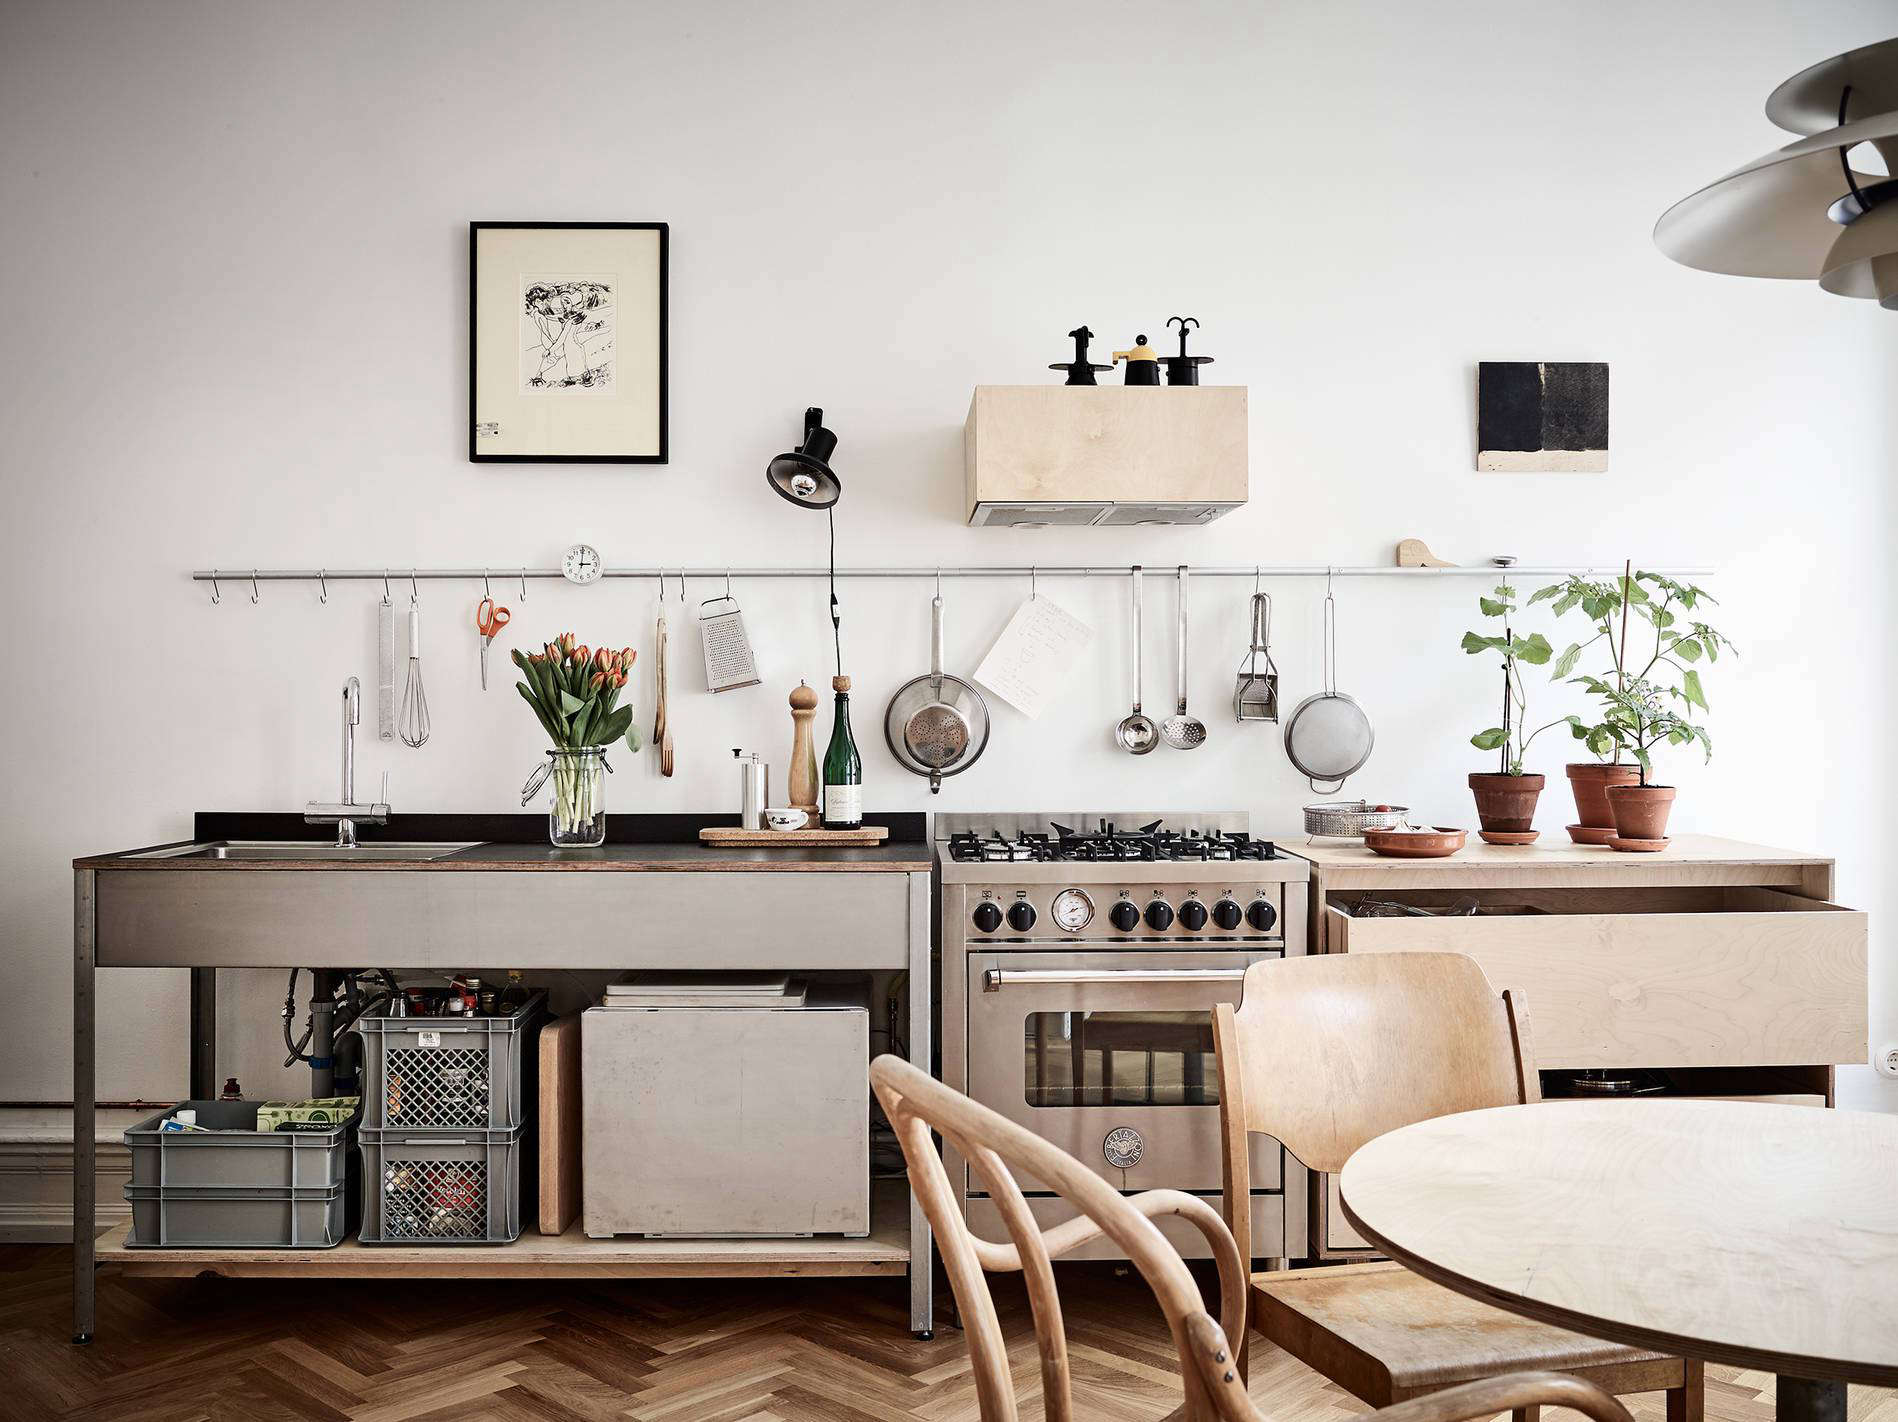 10 Organized Kitchens On A Budget Thanks To Ikea S Grundtal Rail System The Organized Home